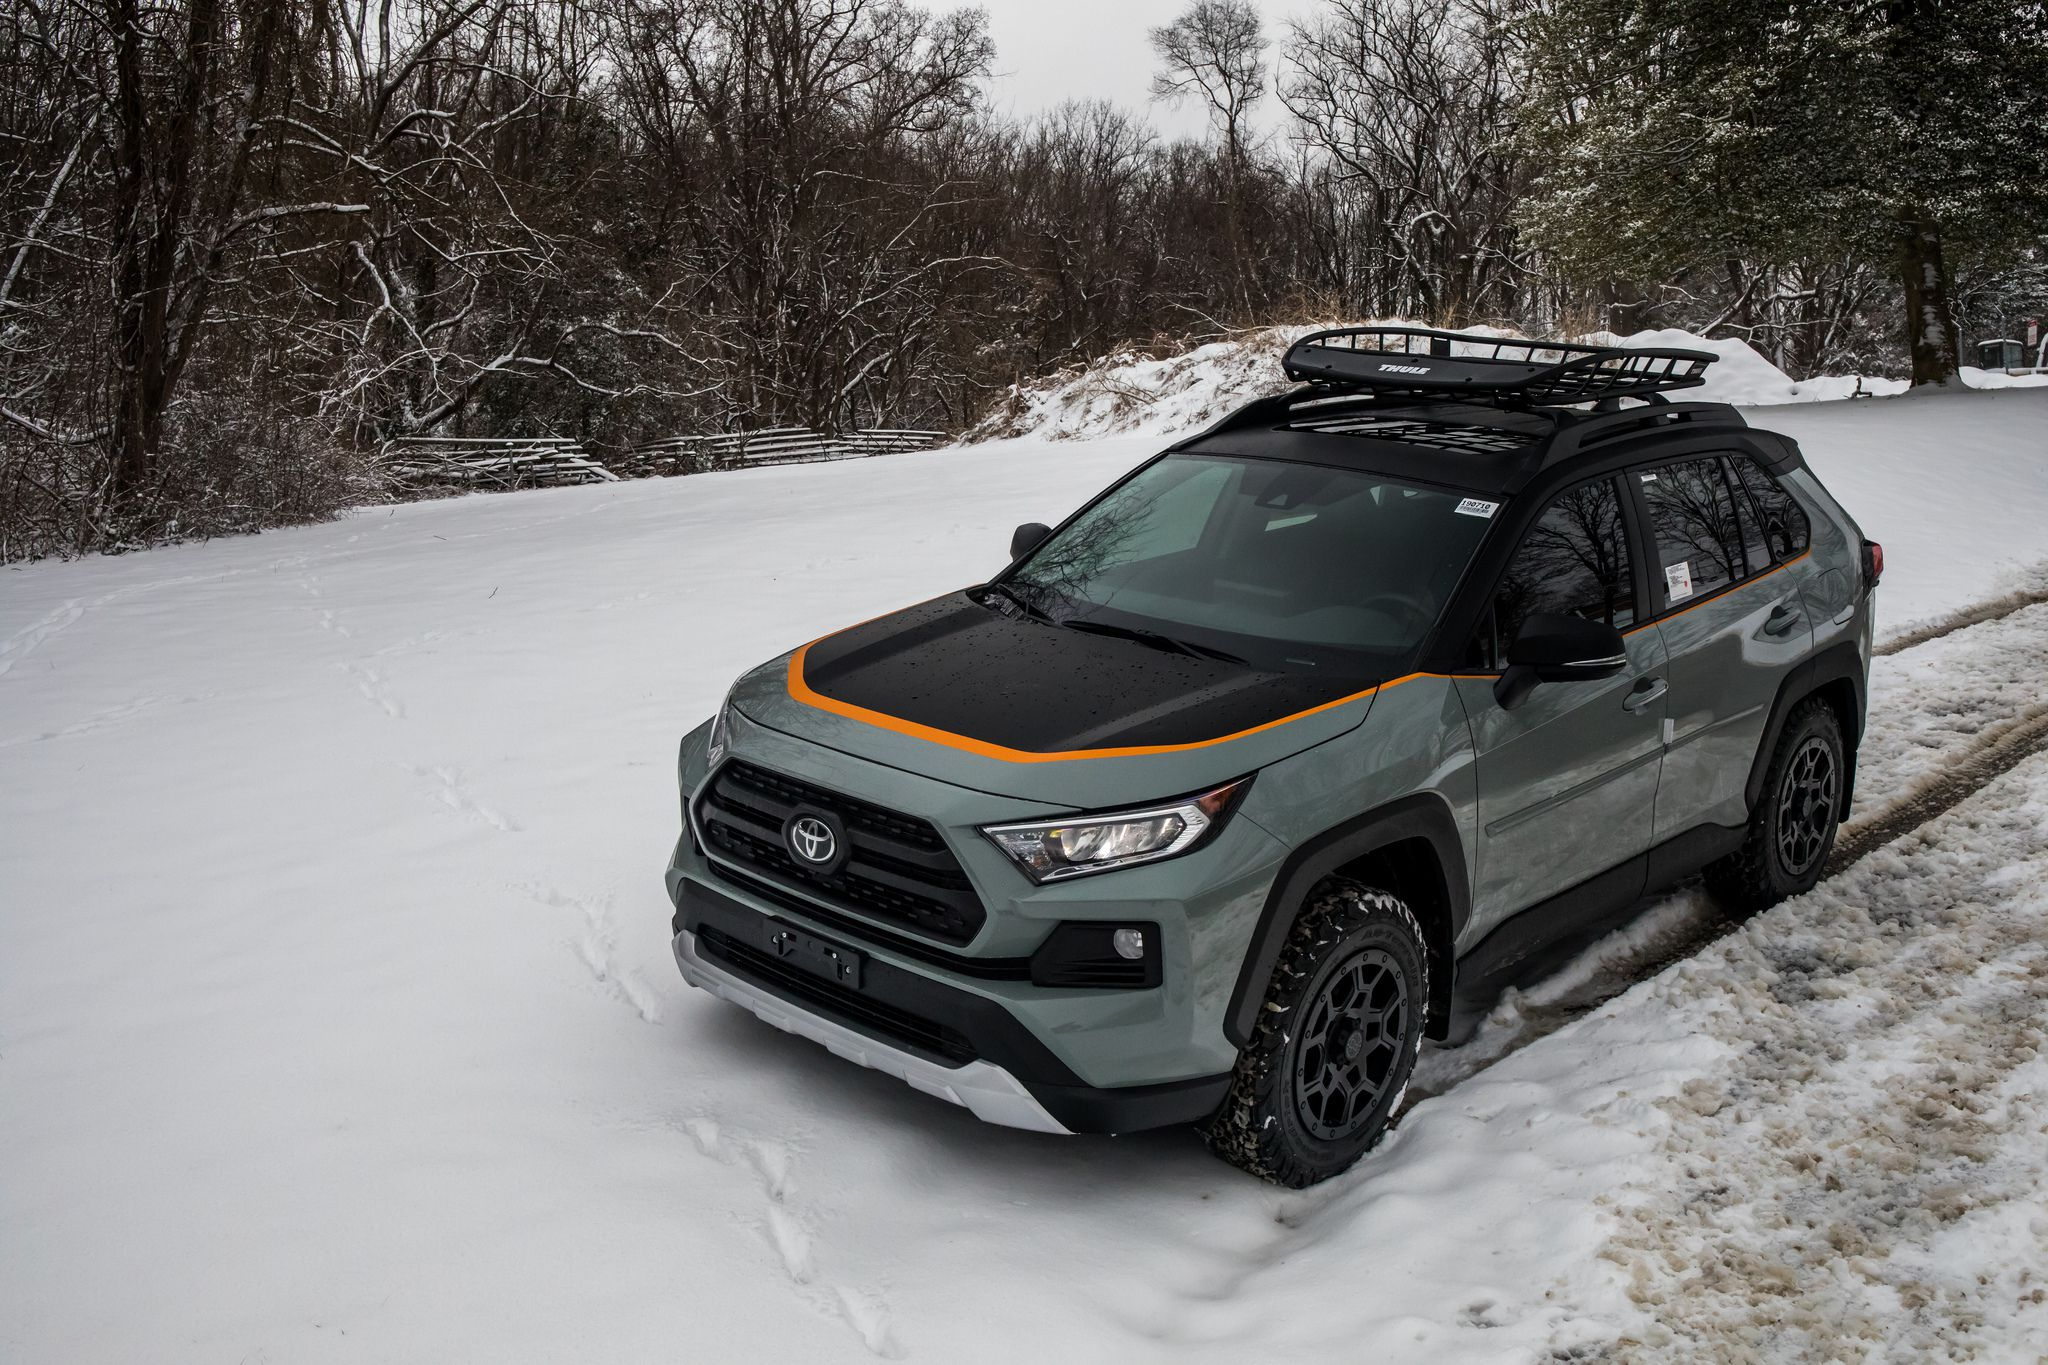 2019 Toyota RAV4 in winter